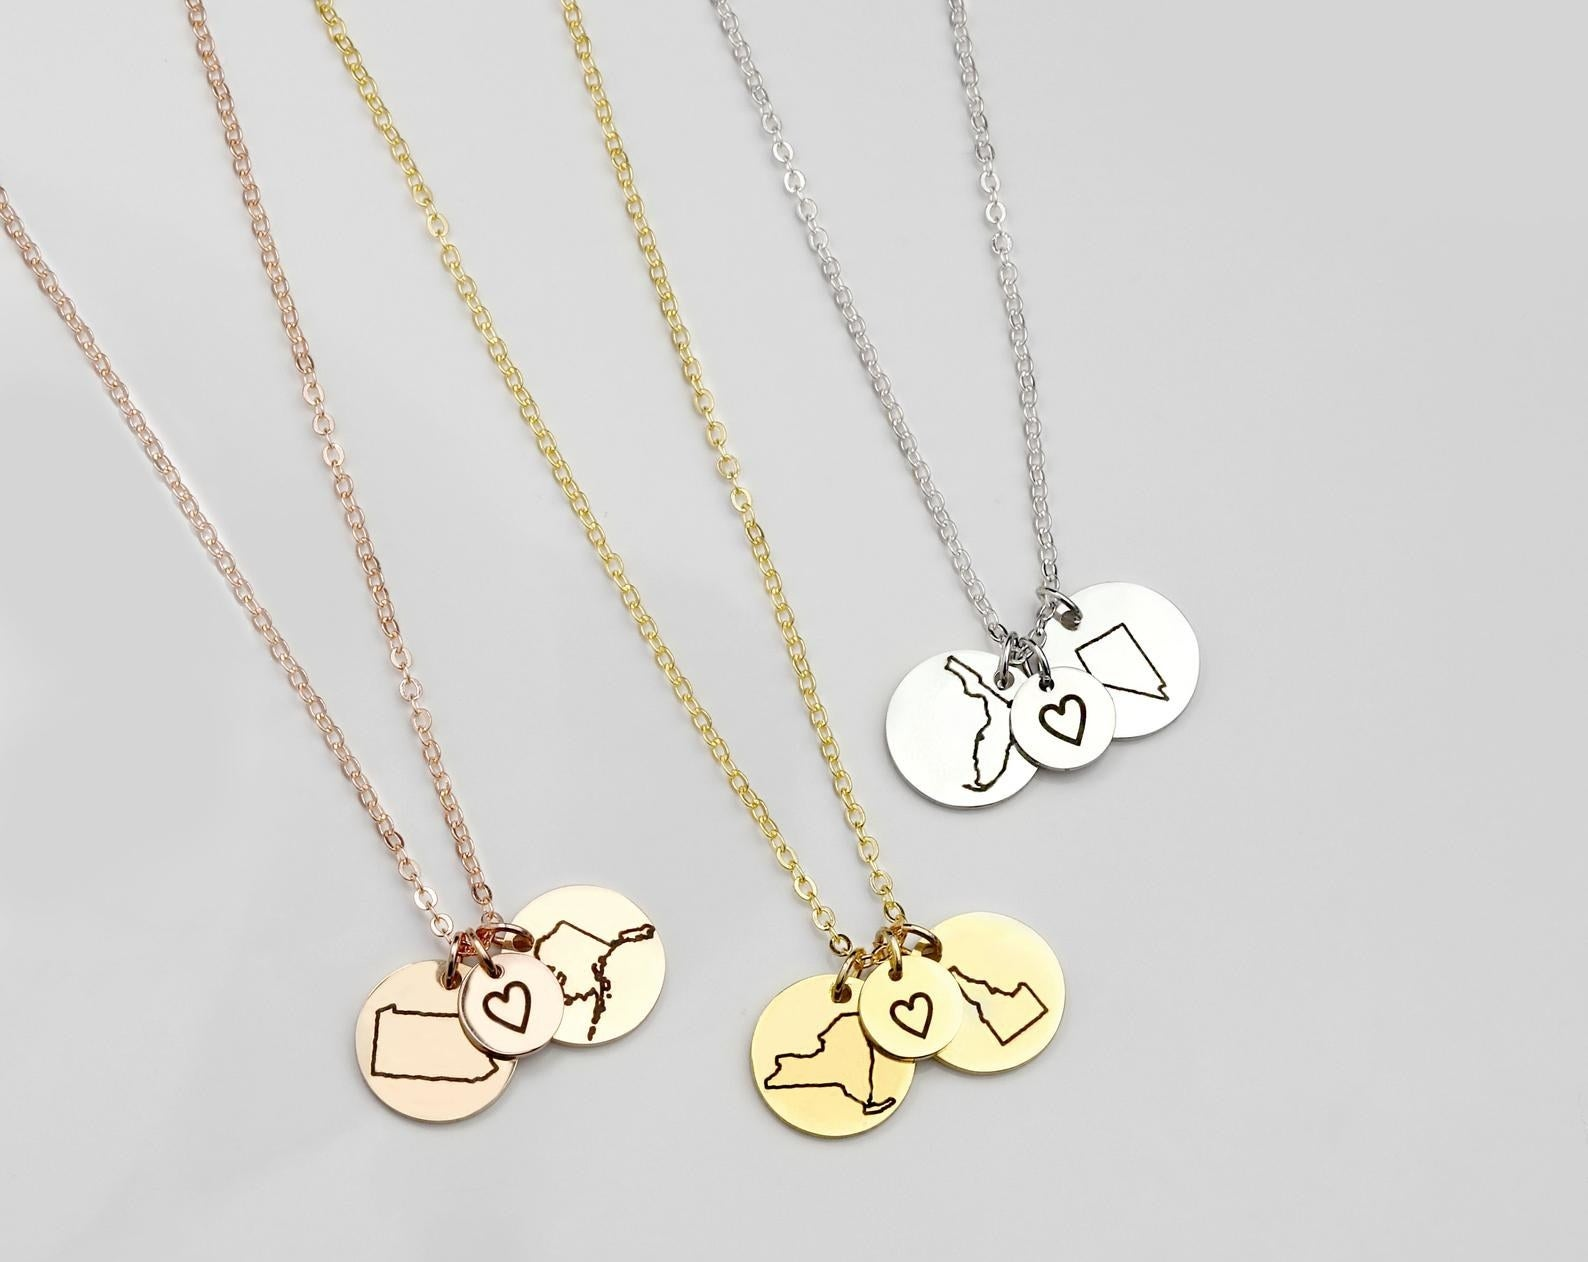 Three bronze, silver, and gold necklaces with pendants of outlines of different U.S. states with a heart pendant in the middle